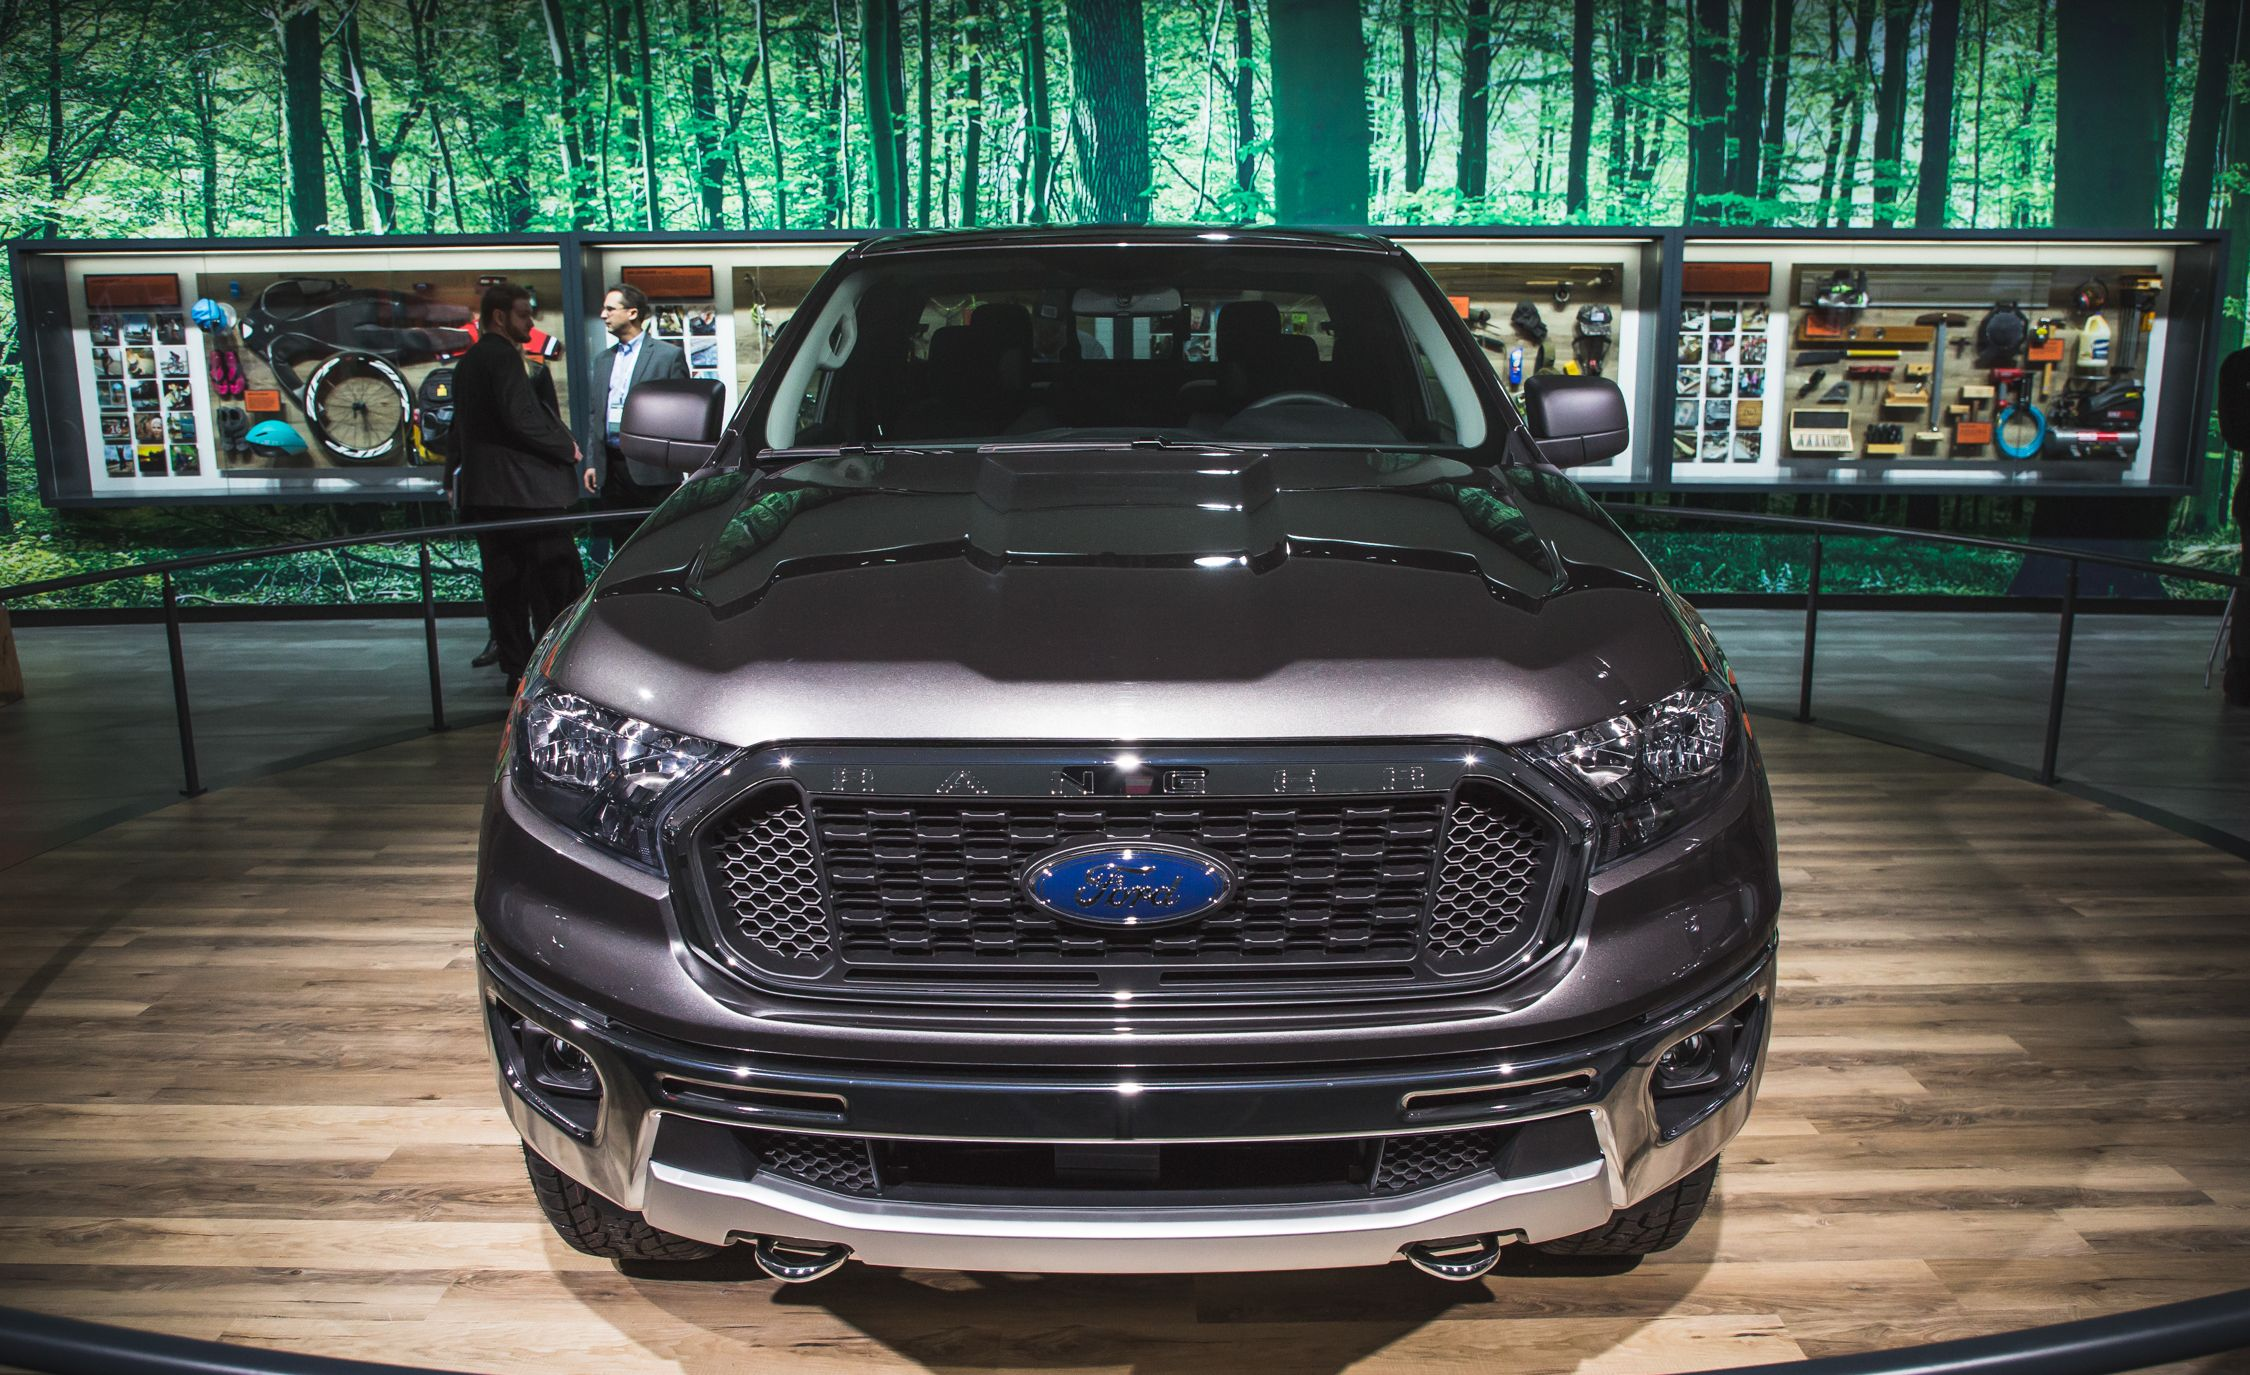 A Brief Range of Things You Need to Know about the 2019 Ford Ranger